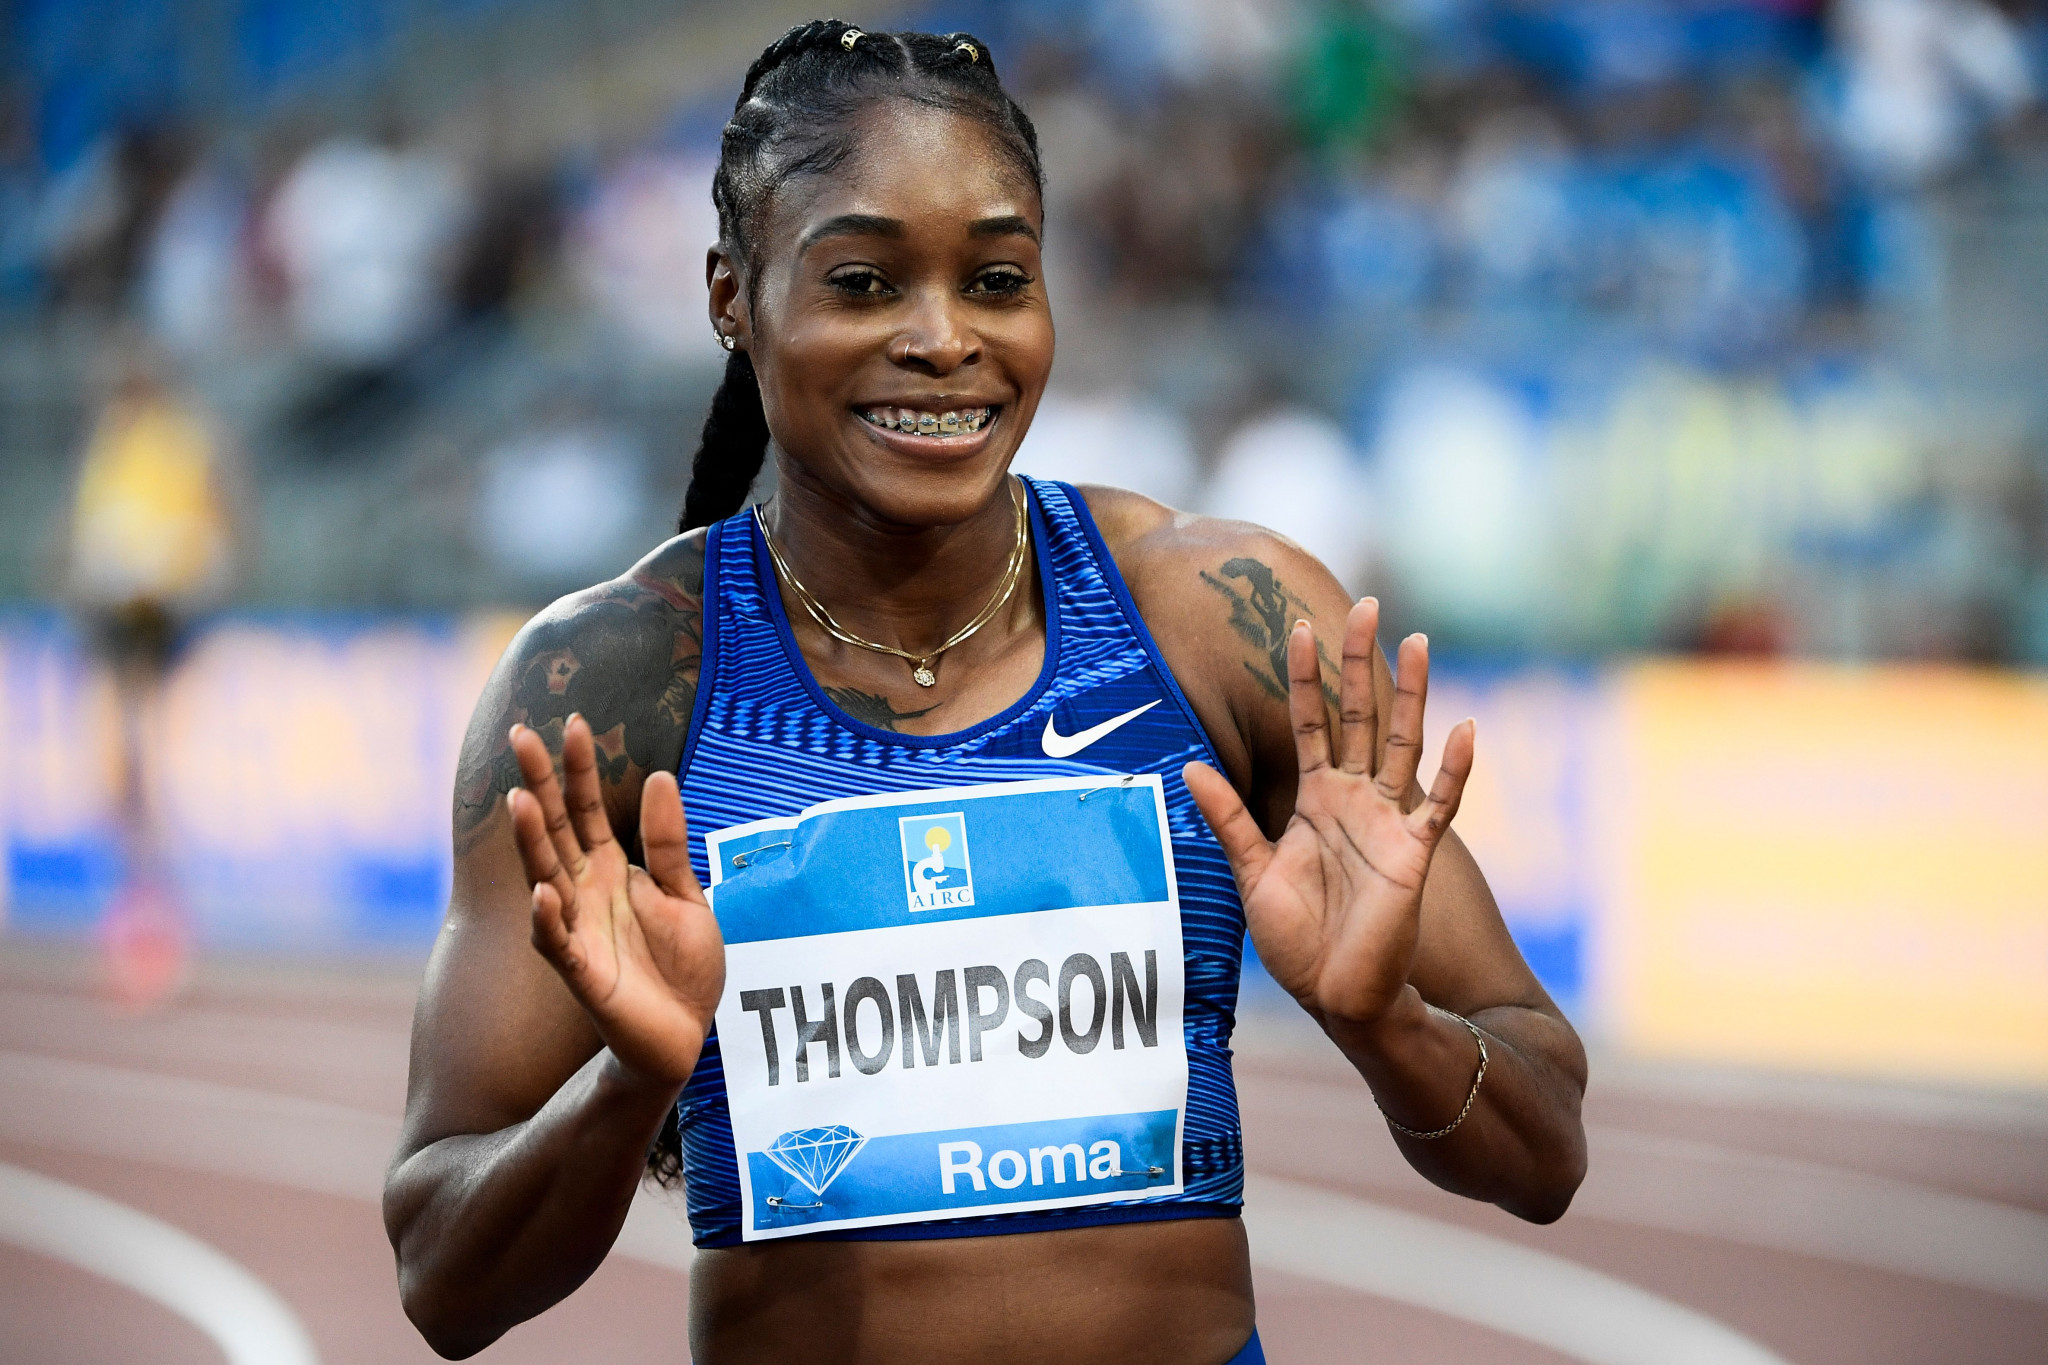 Fraser-Pryce and Thompson head Jamaican athletics squad for Lima 2019